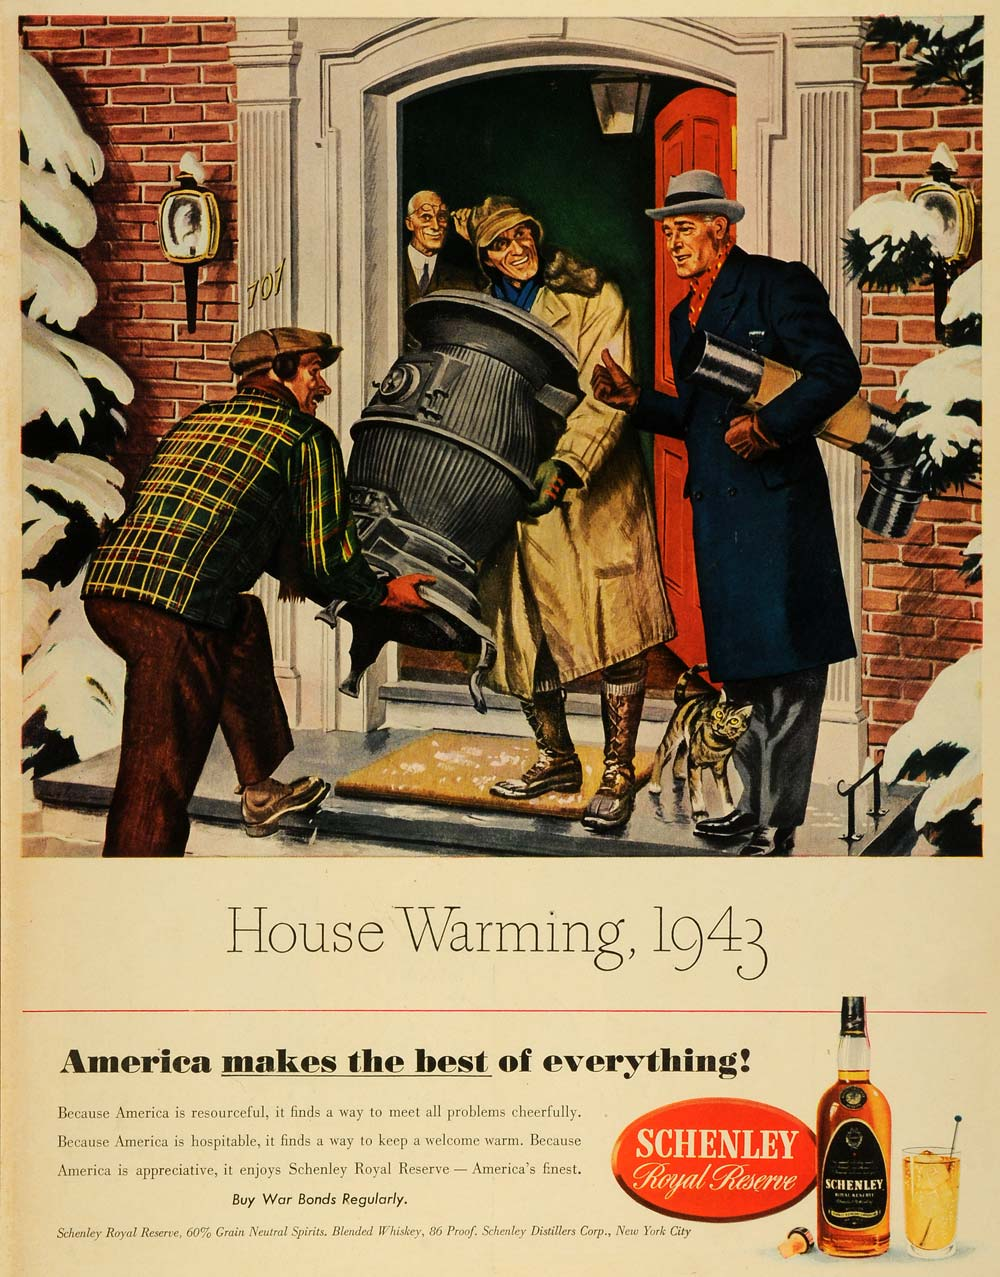 1943 Ad Schenley Royal Reserve Whiskey Liquor Alcohol WWII House Warming LF4